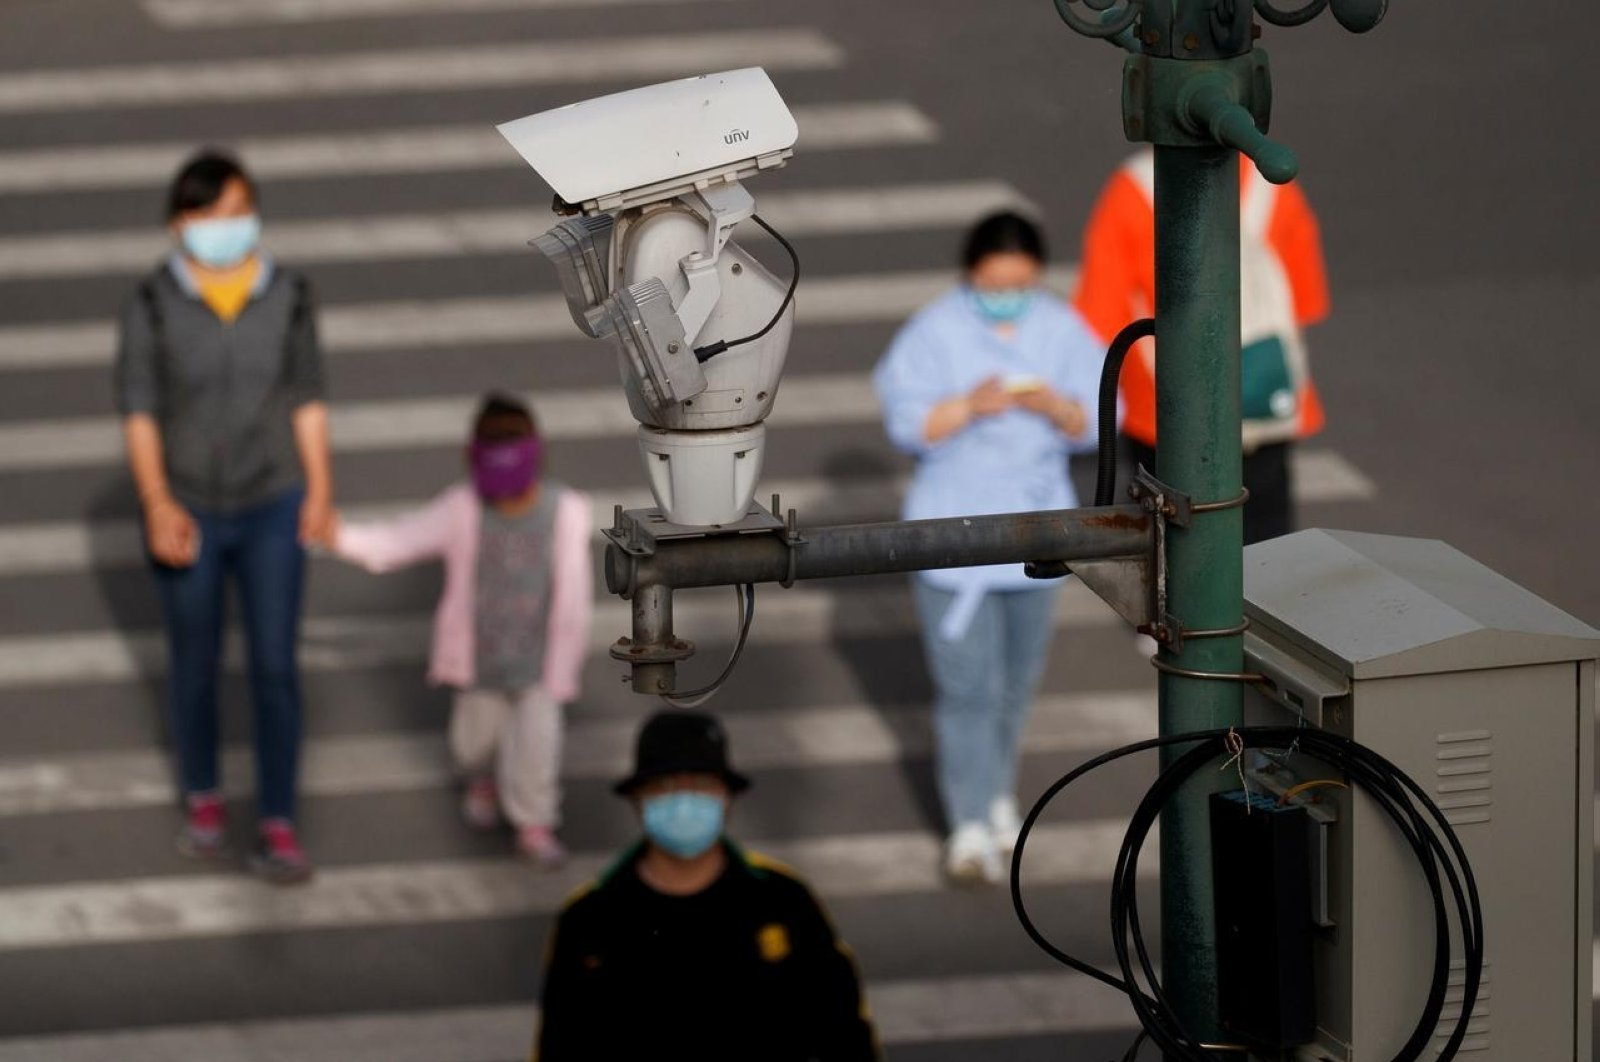 A CCTV security surveillance camera overlooks a street as people walk following the spread of COVID-19 in Beijing, China, May 11, 2020. (Reuters Photo)